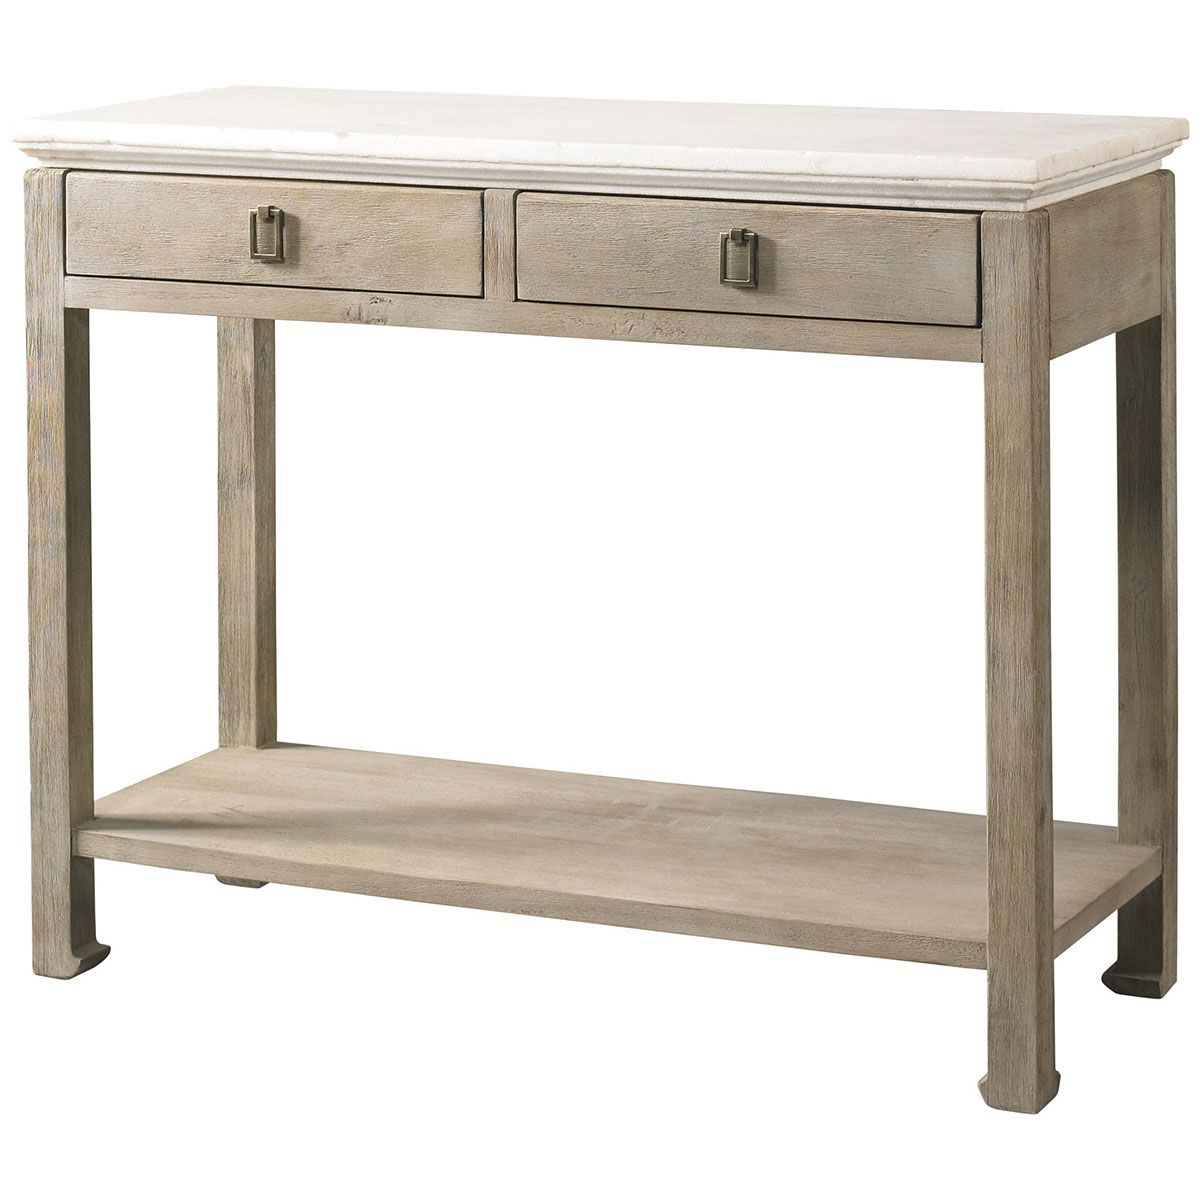 Lillian August Camille Console La96330 01 | Lillian August Regarding Ventana Display Console Tables (View 9 of 20)